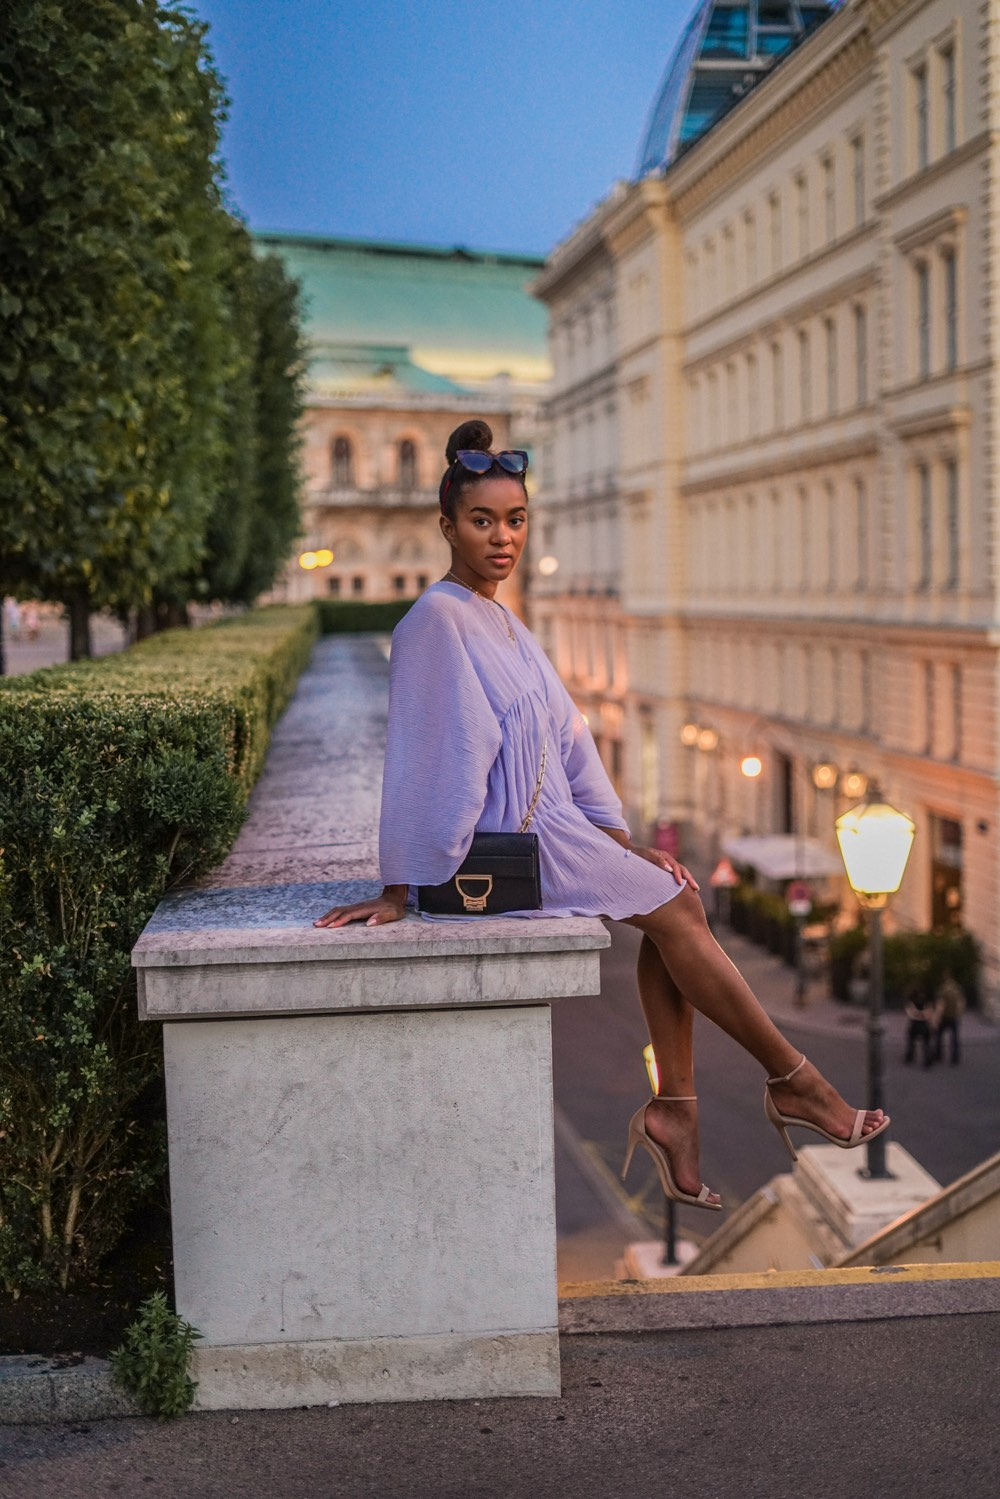 Midnight in Vienna: Wearing a Light Blue Summer Dress